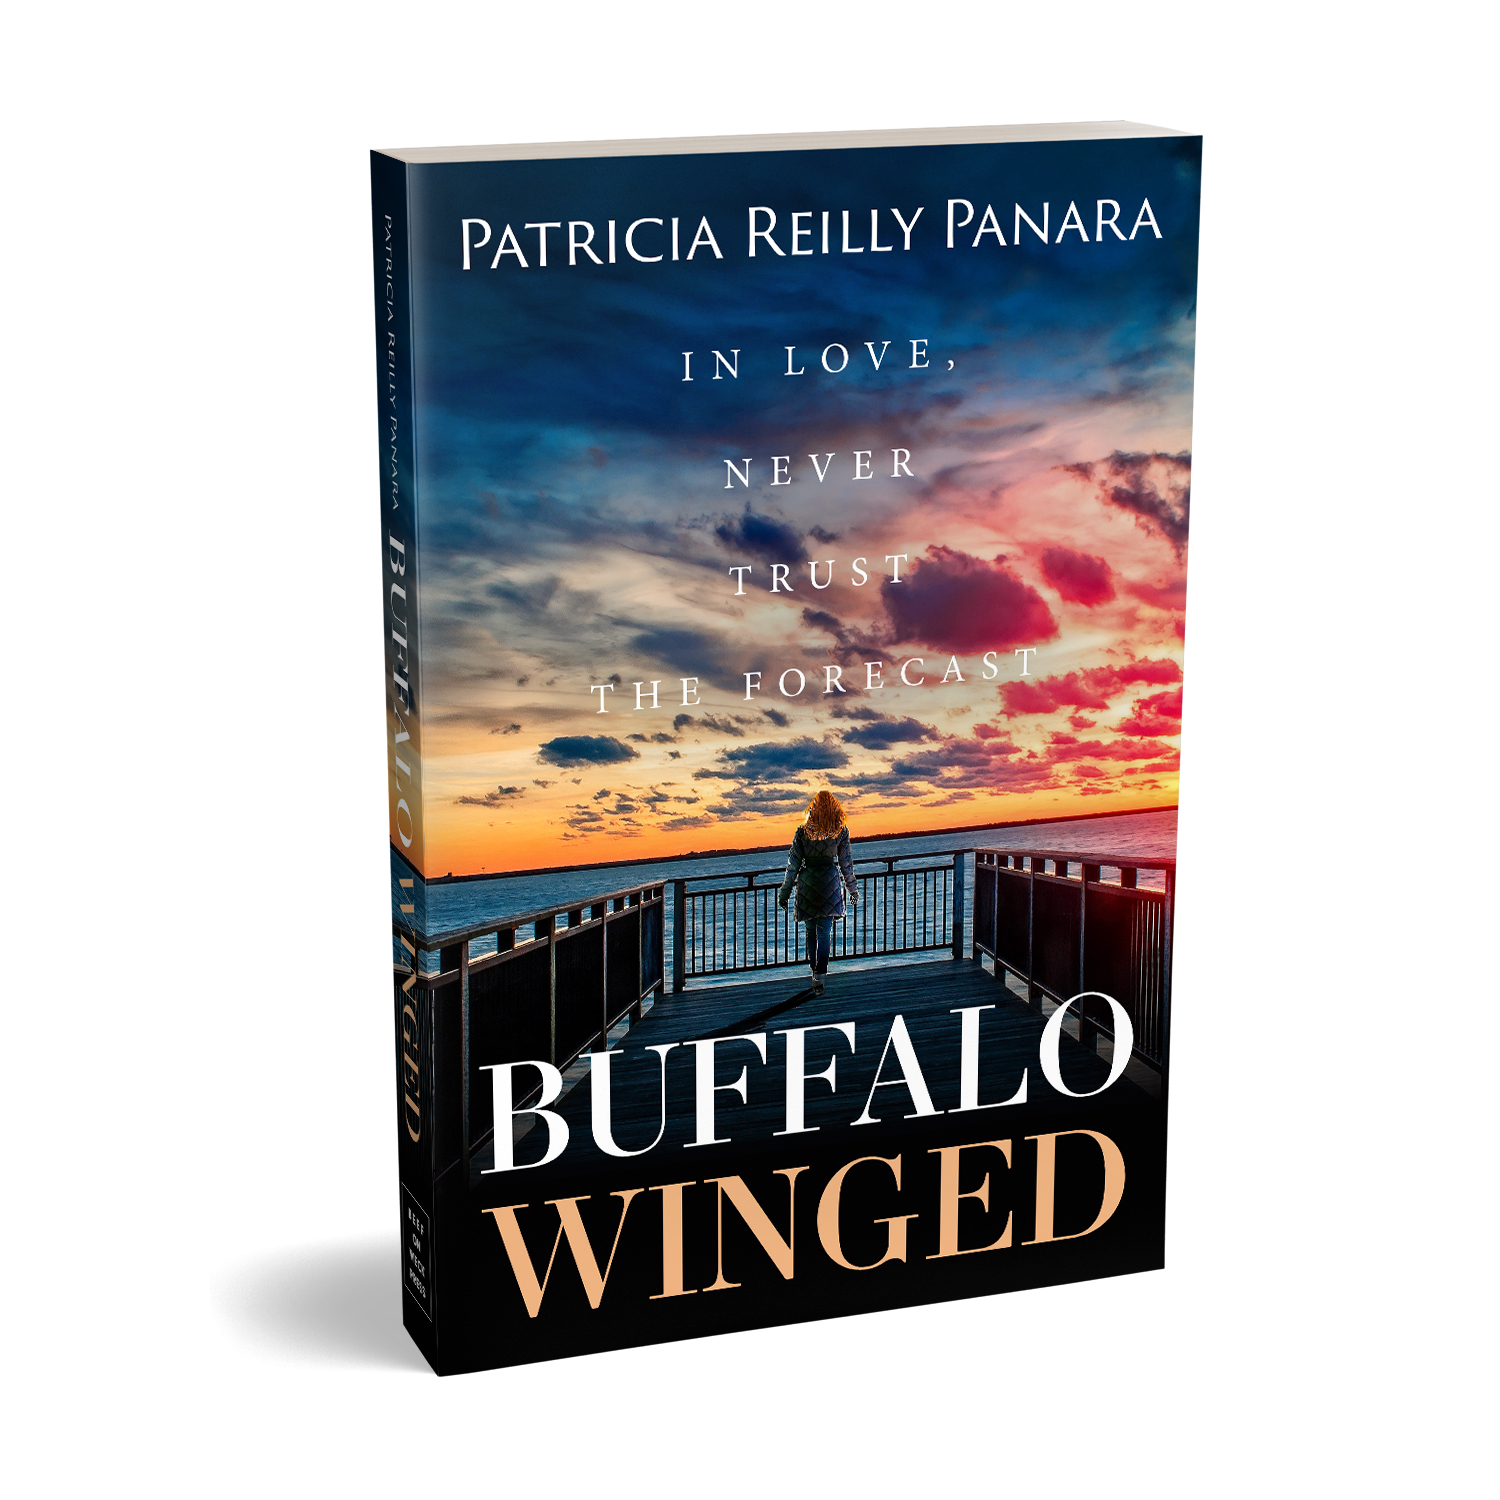 'Buffalo Winged' is a romantic novel, set in upstate New York. The author is Patricia Reilly Panara. The book cover and interior were designed by Mark Thomas, of coverness.com. To find out more about my book design services, please visit www.coverness.com.